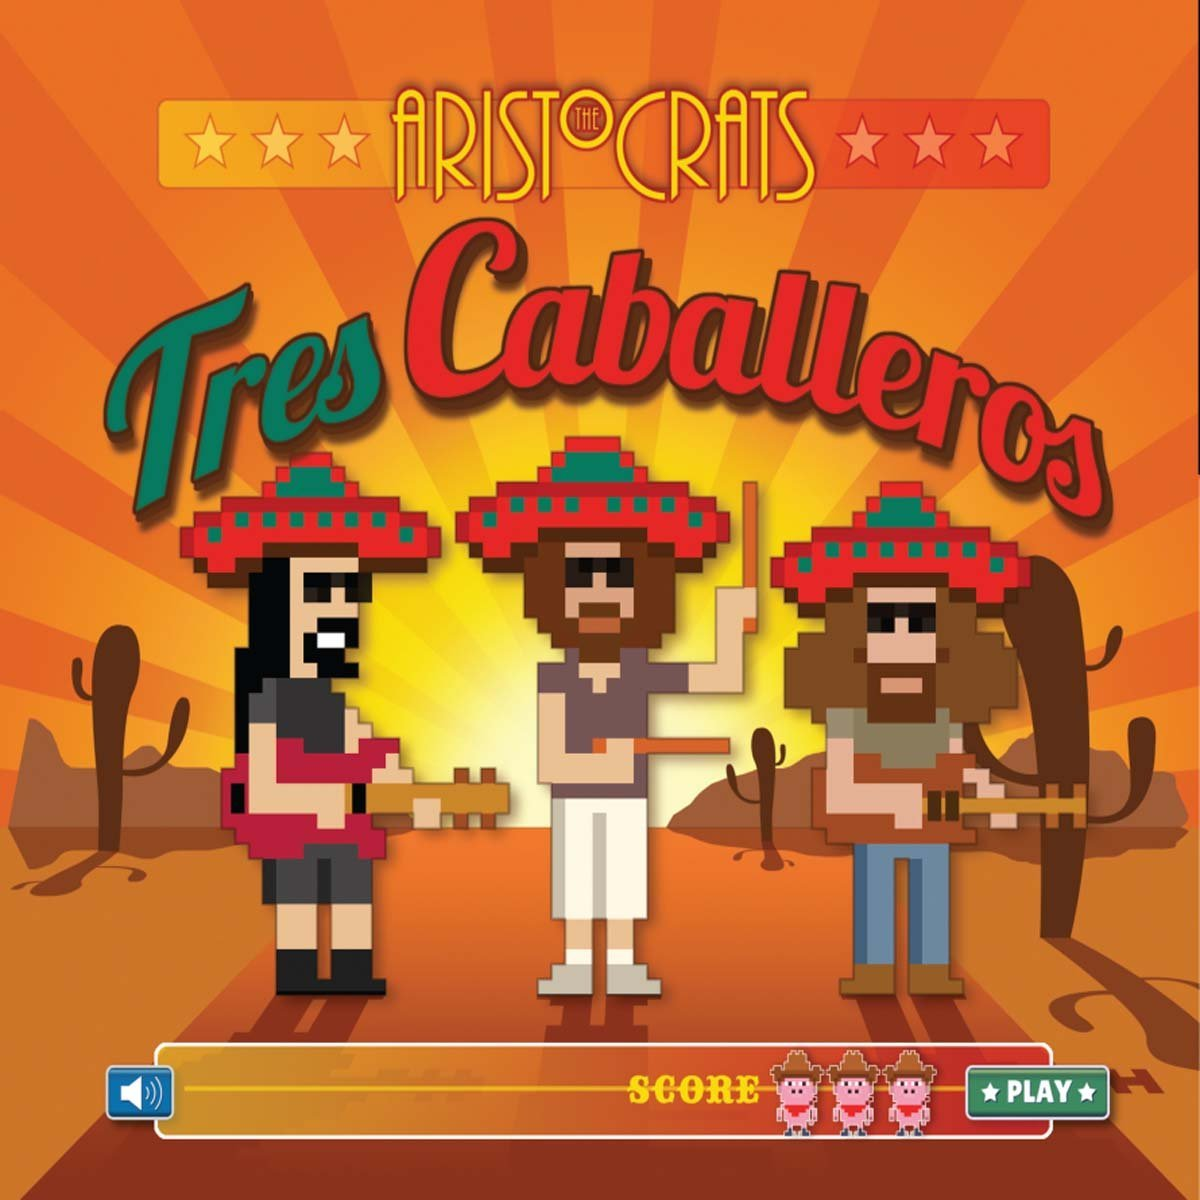 Tres Caballeros Cover art